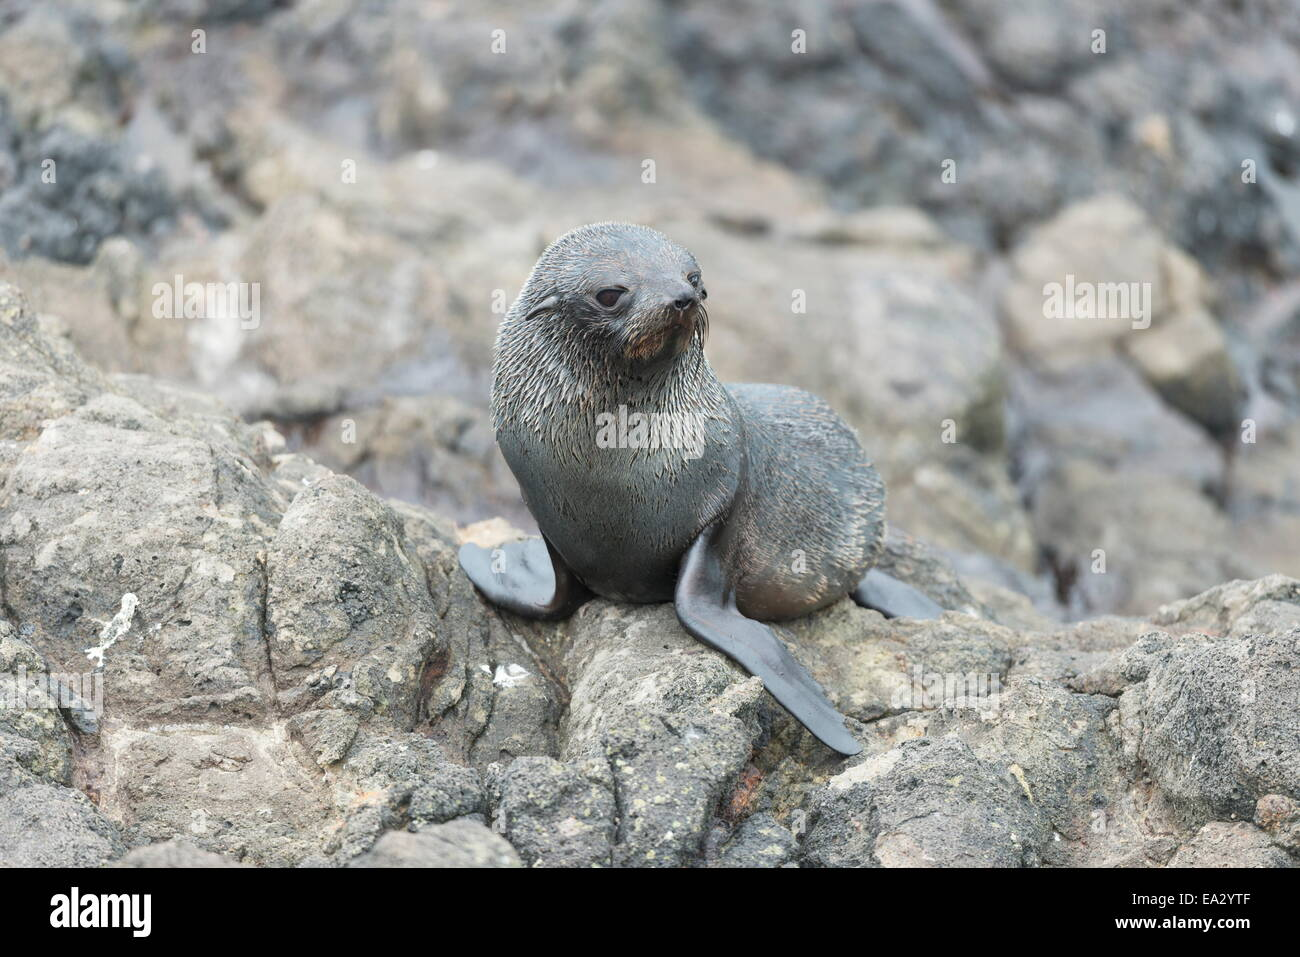 New Zealand Fur Seal Pup at Otago Peninsula, Dunedin, Otago, South Island, New Zealand, Pacific - Stock Image